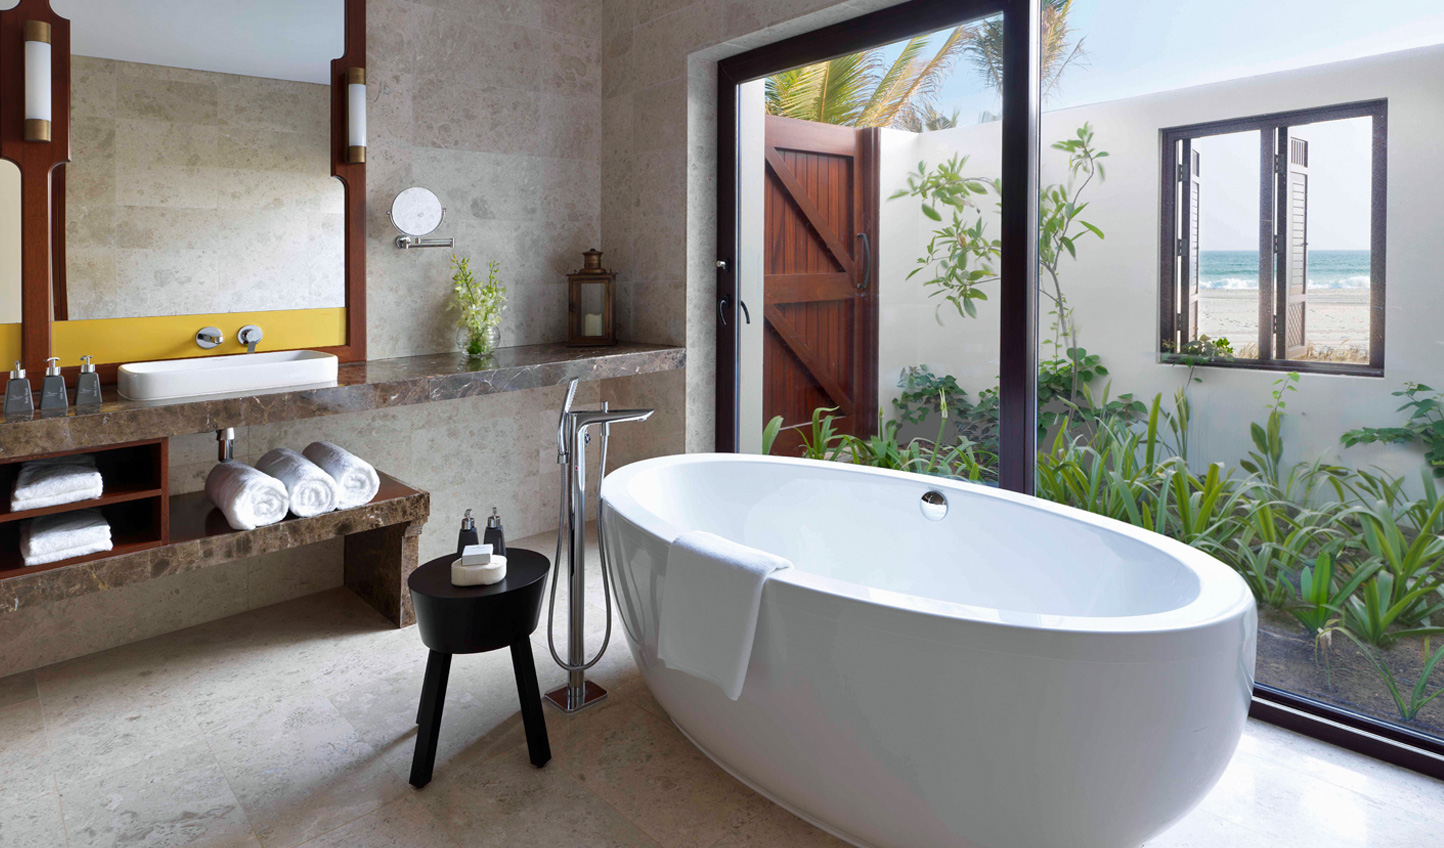 Bathe beneath the bubbles in your Royal Beach Villa